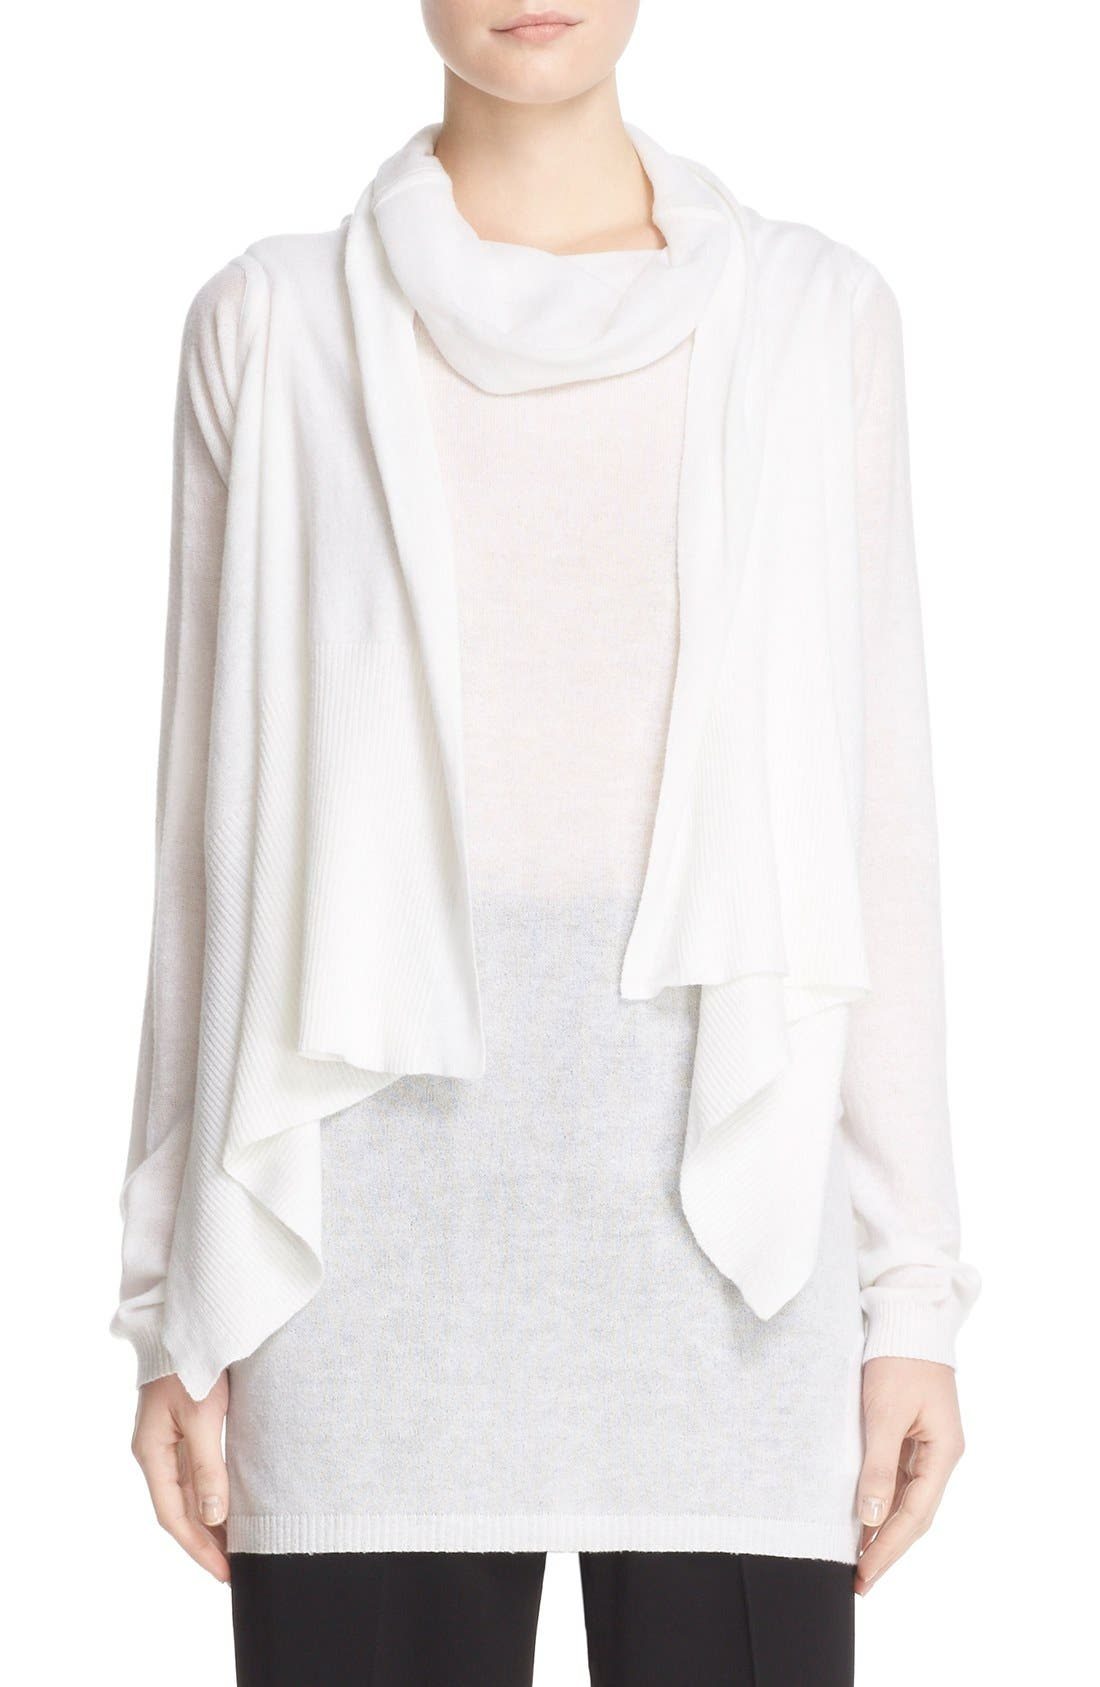 Alternate Image 1 Selected - Rick Owens Drape Front Cotton & Cashmere Cardigan